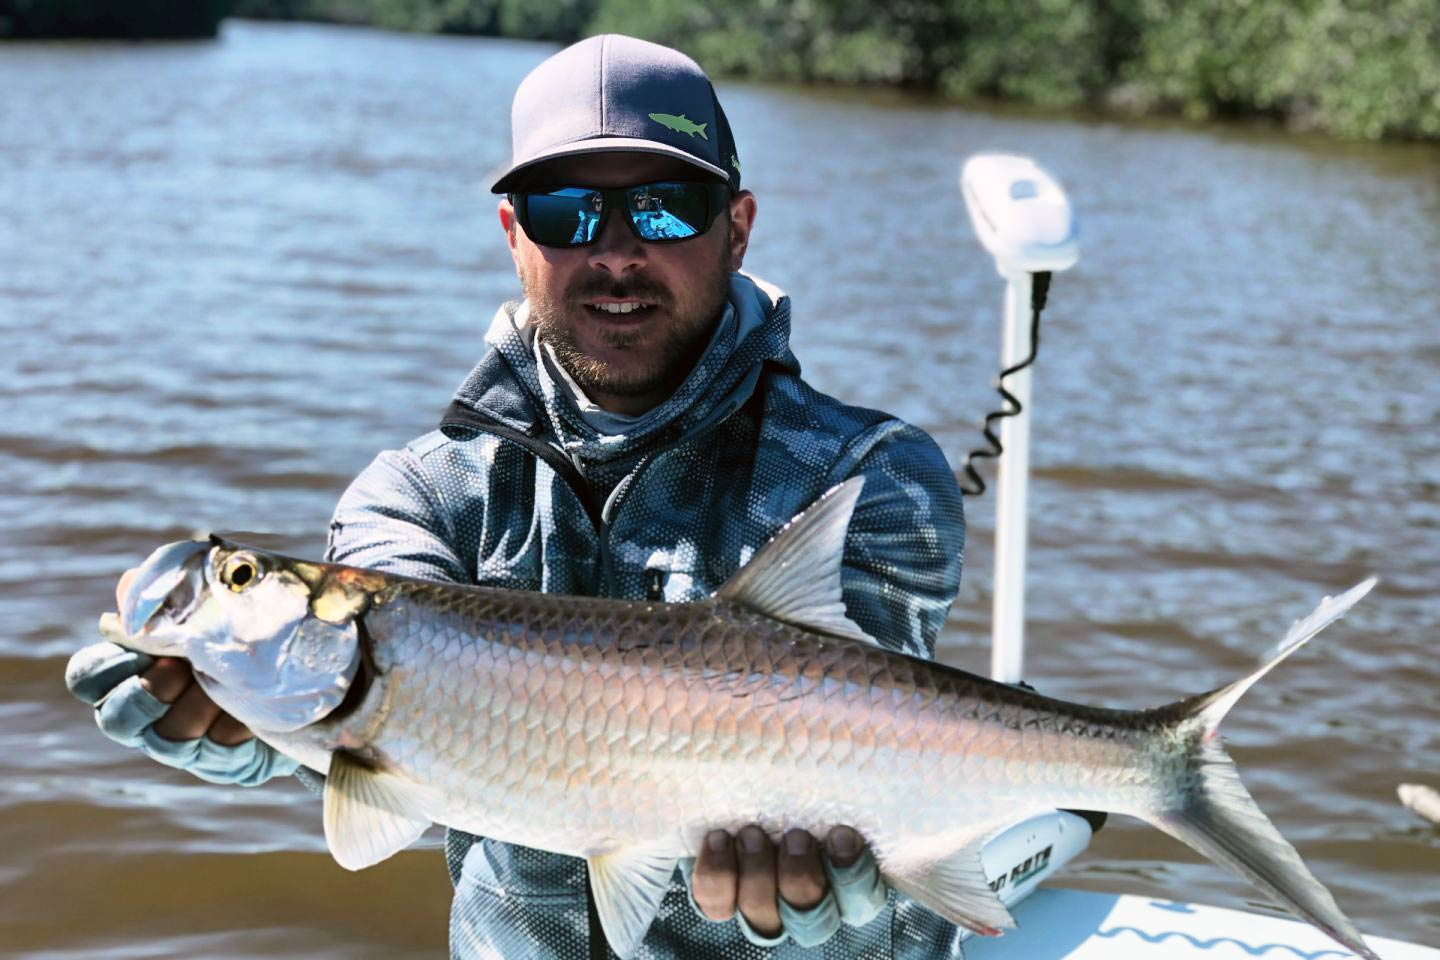 A man holds a large Tarpon up to the camera, with the mangrove waters of Marco Island in the background